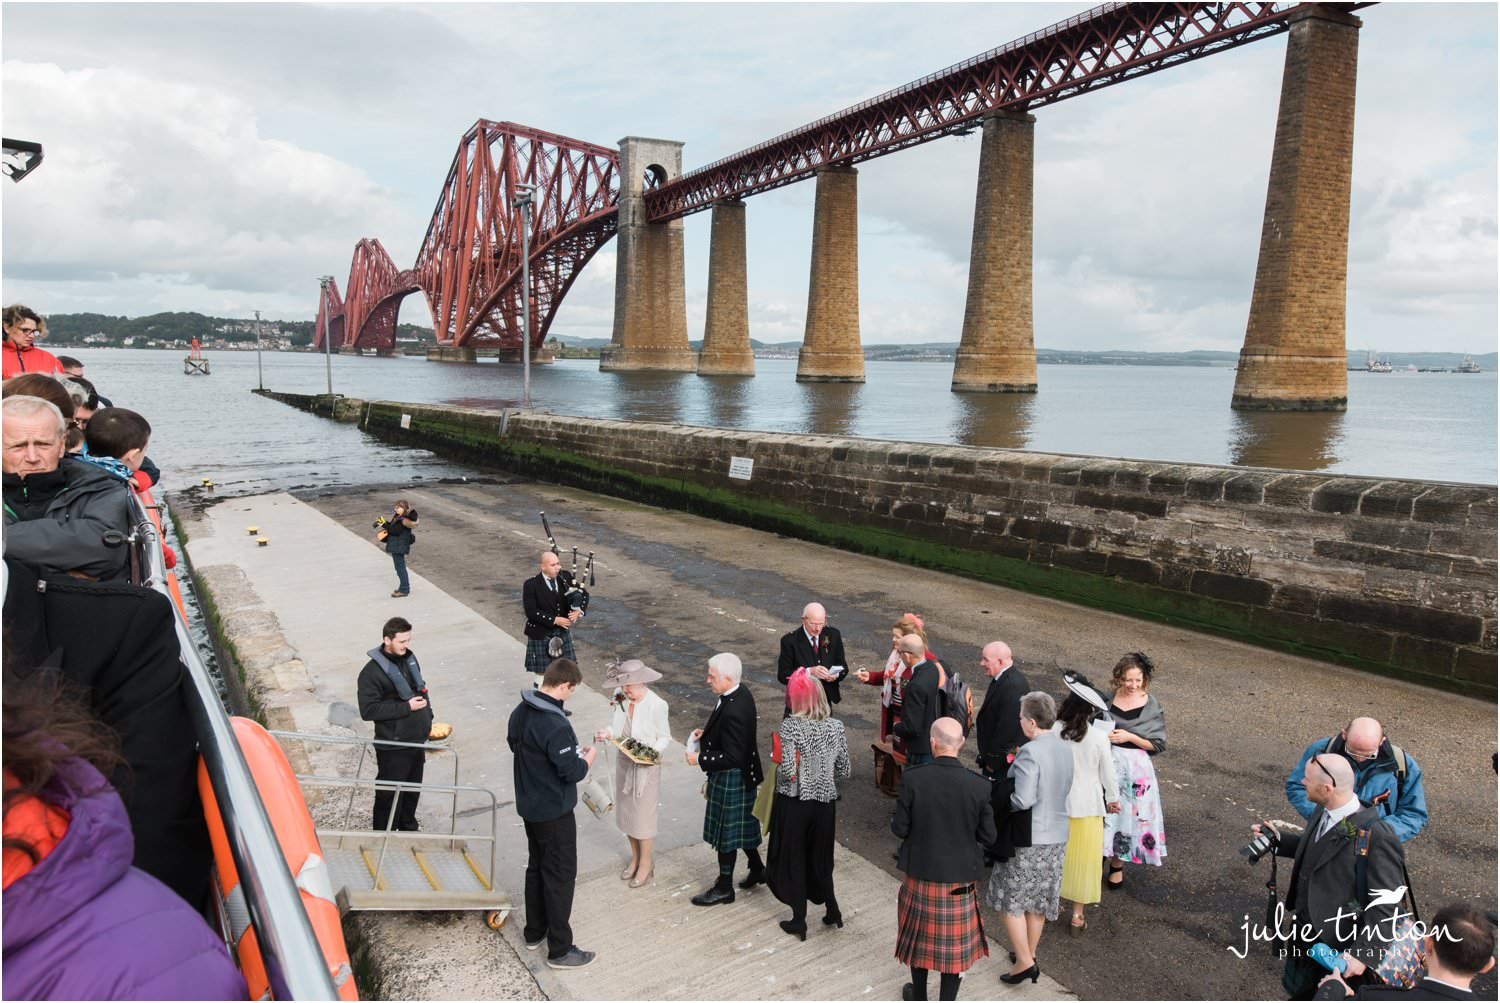 Wedding Guests waiting to board Maid of Forth for a wedding at Inchcolm Island